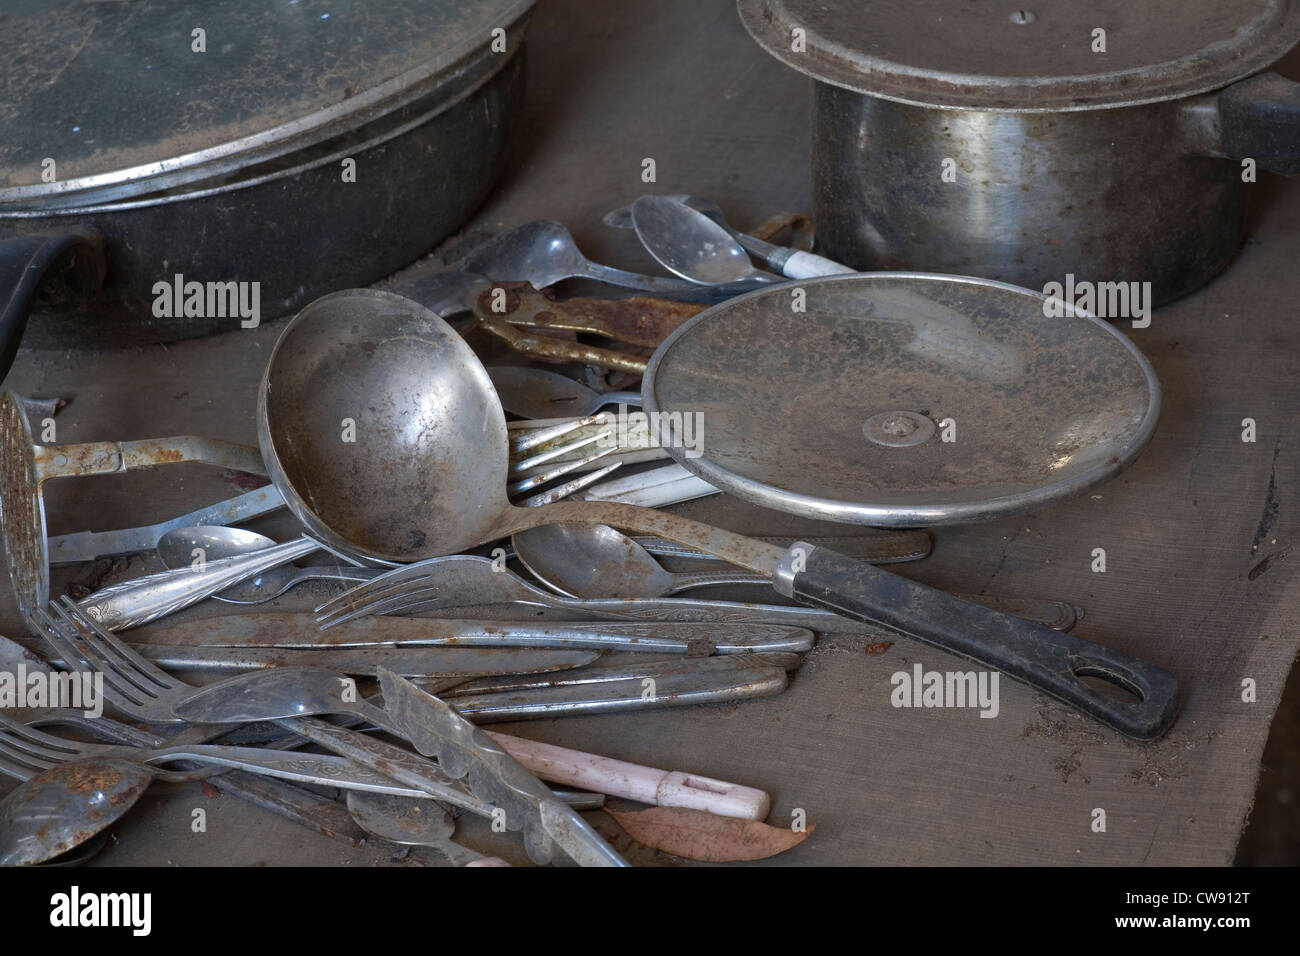 Rusty and dirty old kitchen utensils in a long abandoned shack. - Stock Image